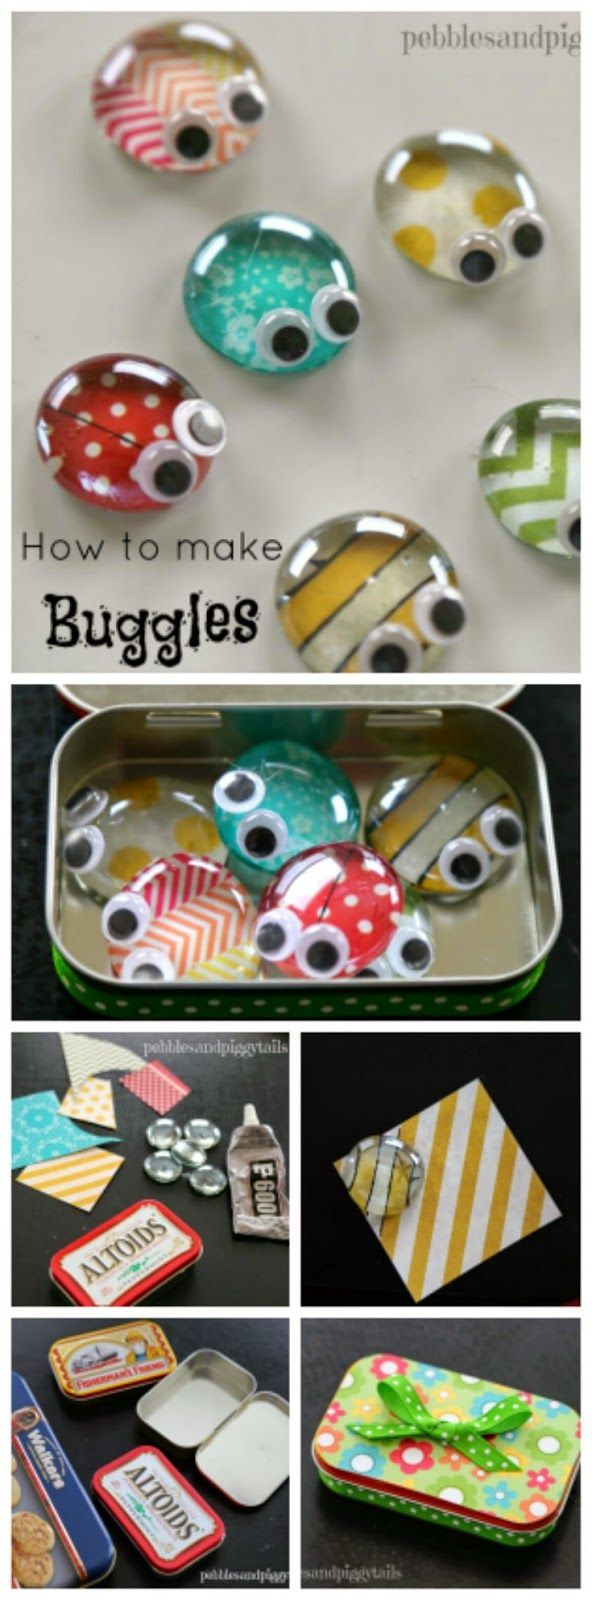 Craft toys for kids - Making Life Meaningful Altoid Tin Reuse Bug Craft Toy How To Make This Cute Bug Craft With Kids Altoid Tin Reuse Bug Craft Toy If You Have A Passion For